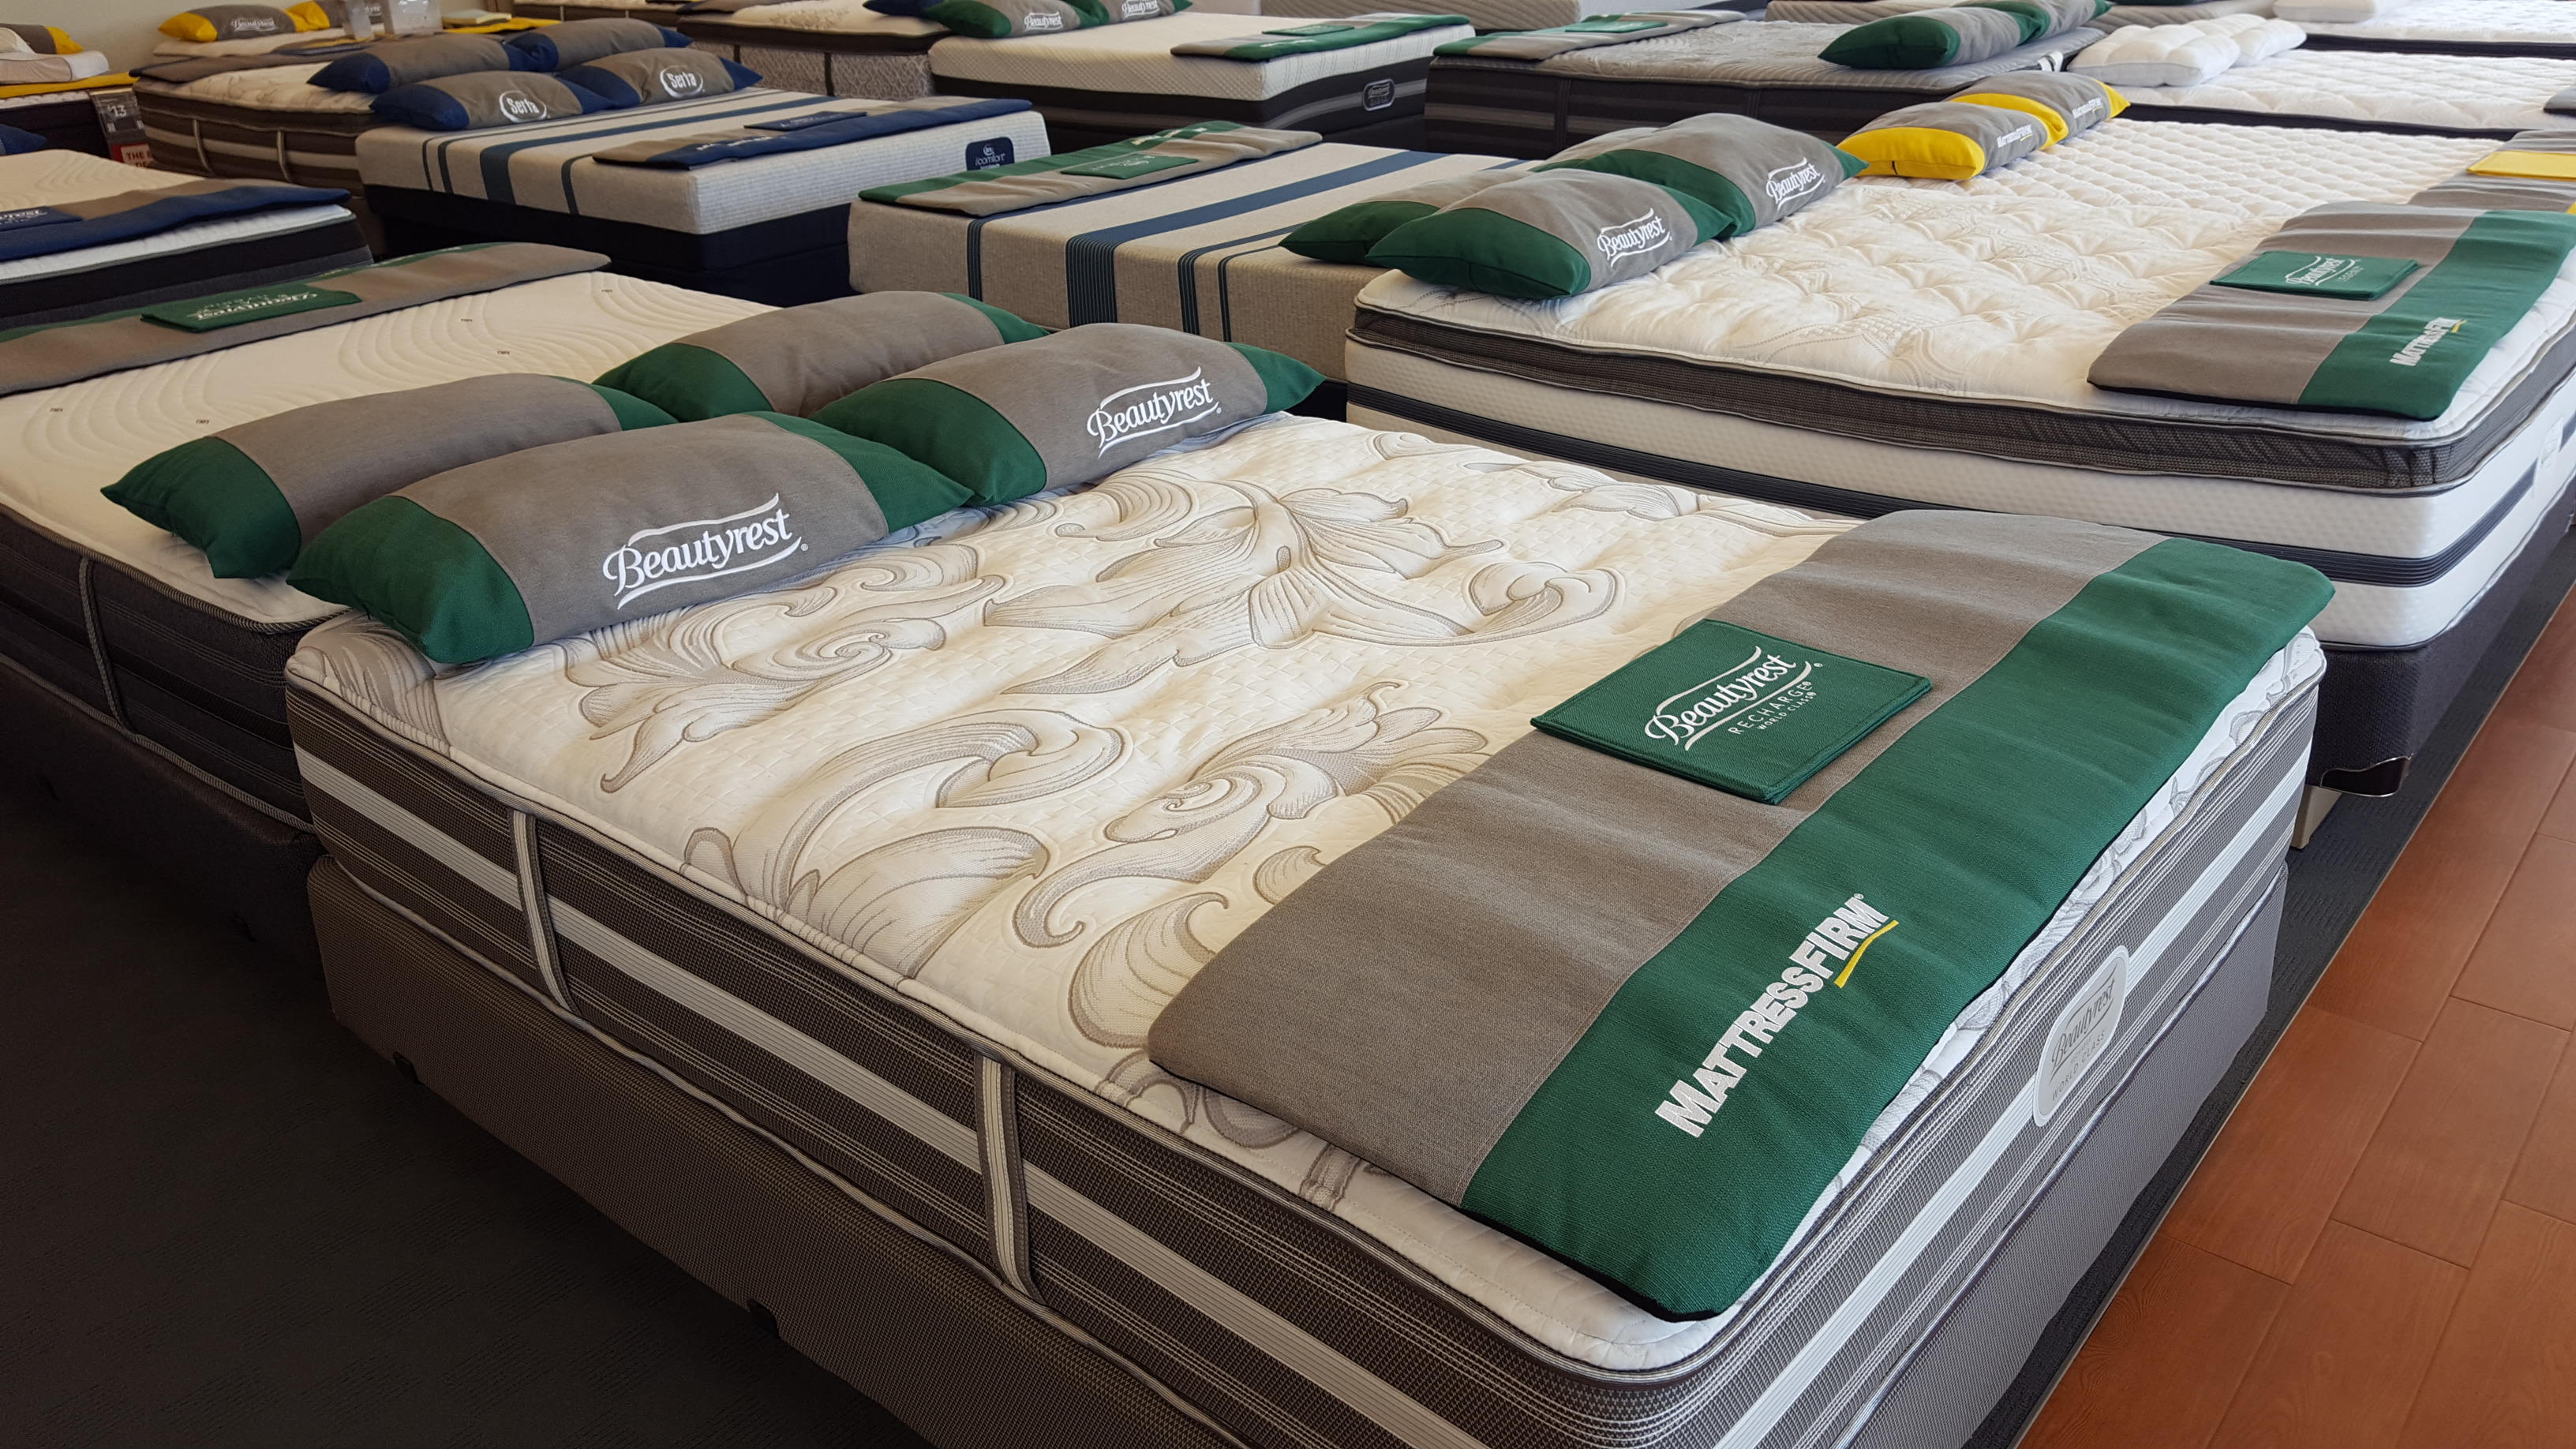 Mattress Firm Wedge Olive Branch image 4